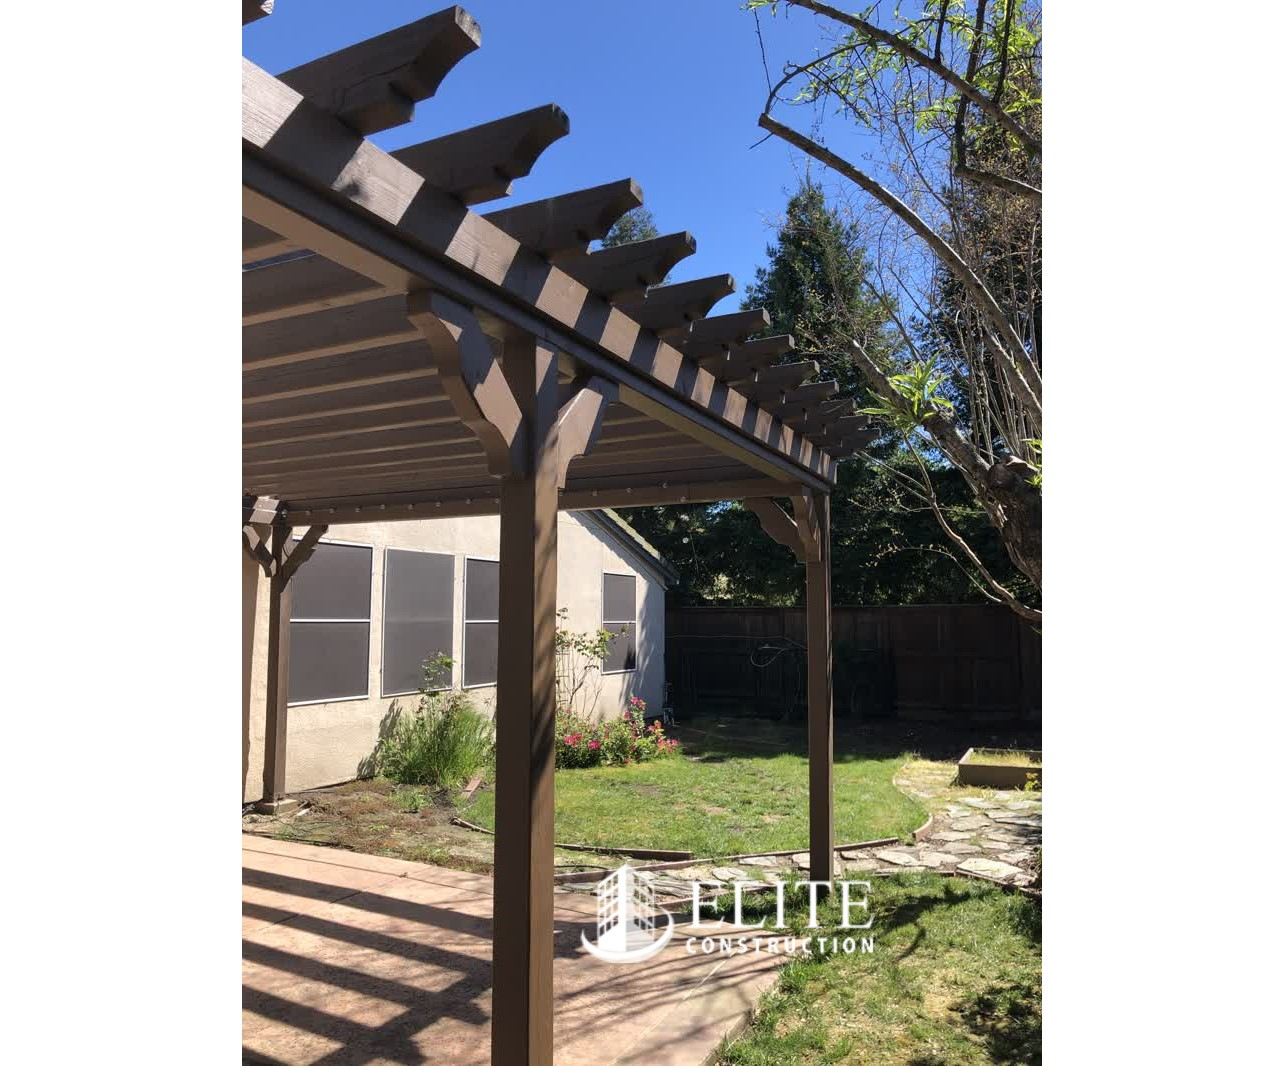 The Exterior Patio Support Post Support Beams Dry Rot